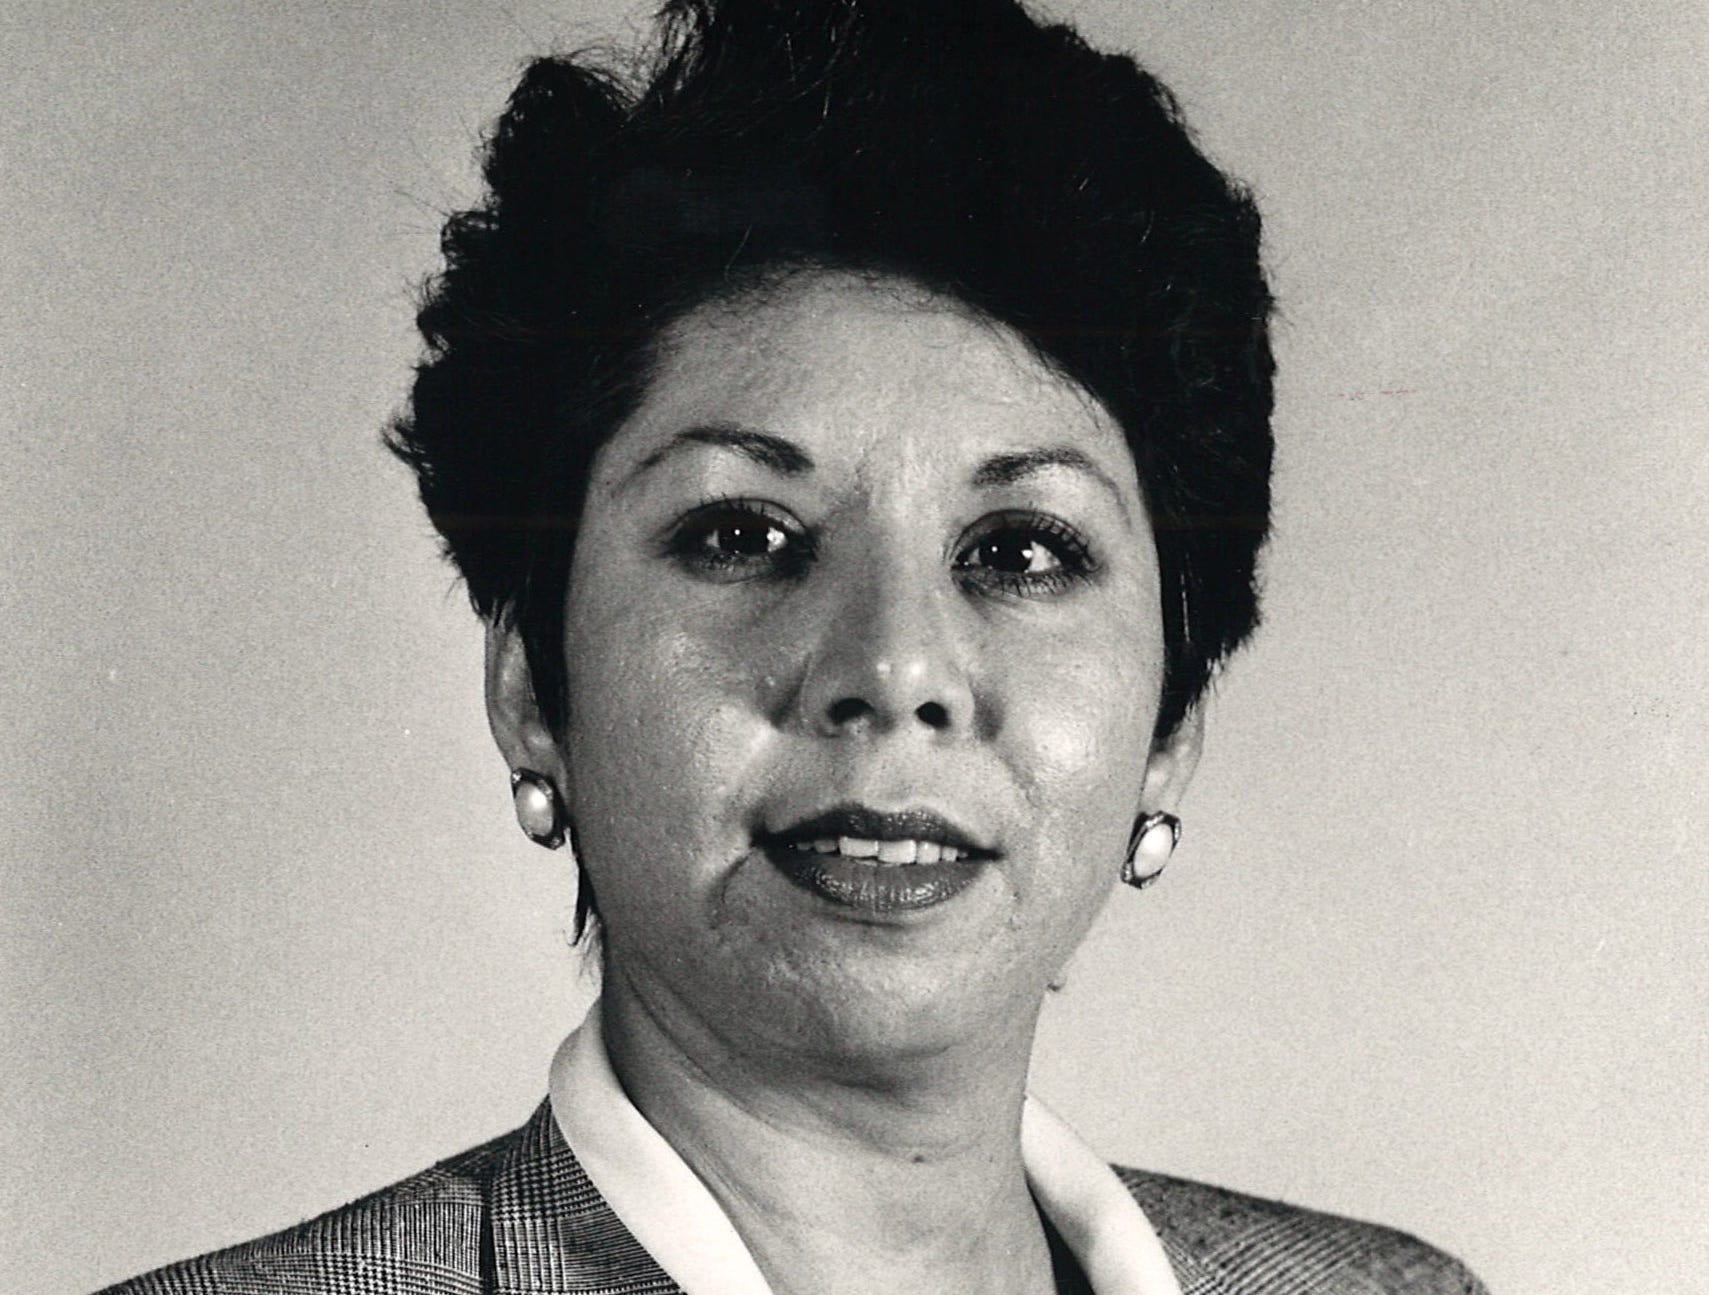 Hilda Tagle was appointed to County Court-at-Law No. 3 in June 1985, then was elected a district judge in 1994. She was confirmed as a U.S. District Judge for the Southern District of Texas in 1998.